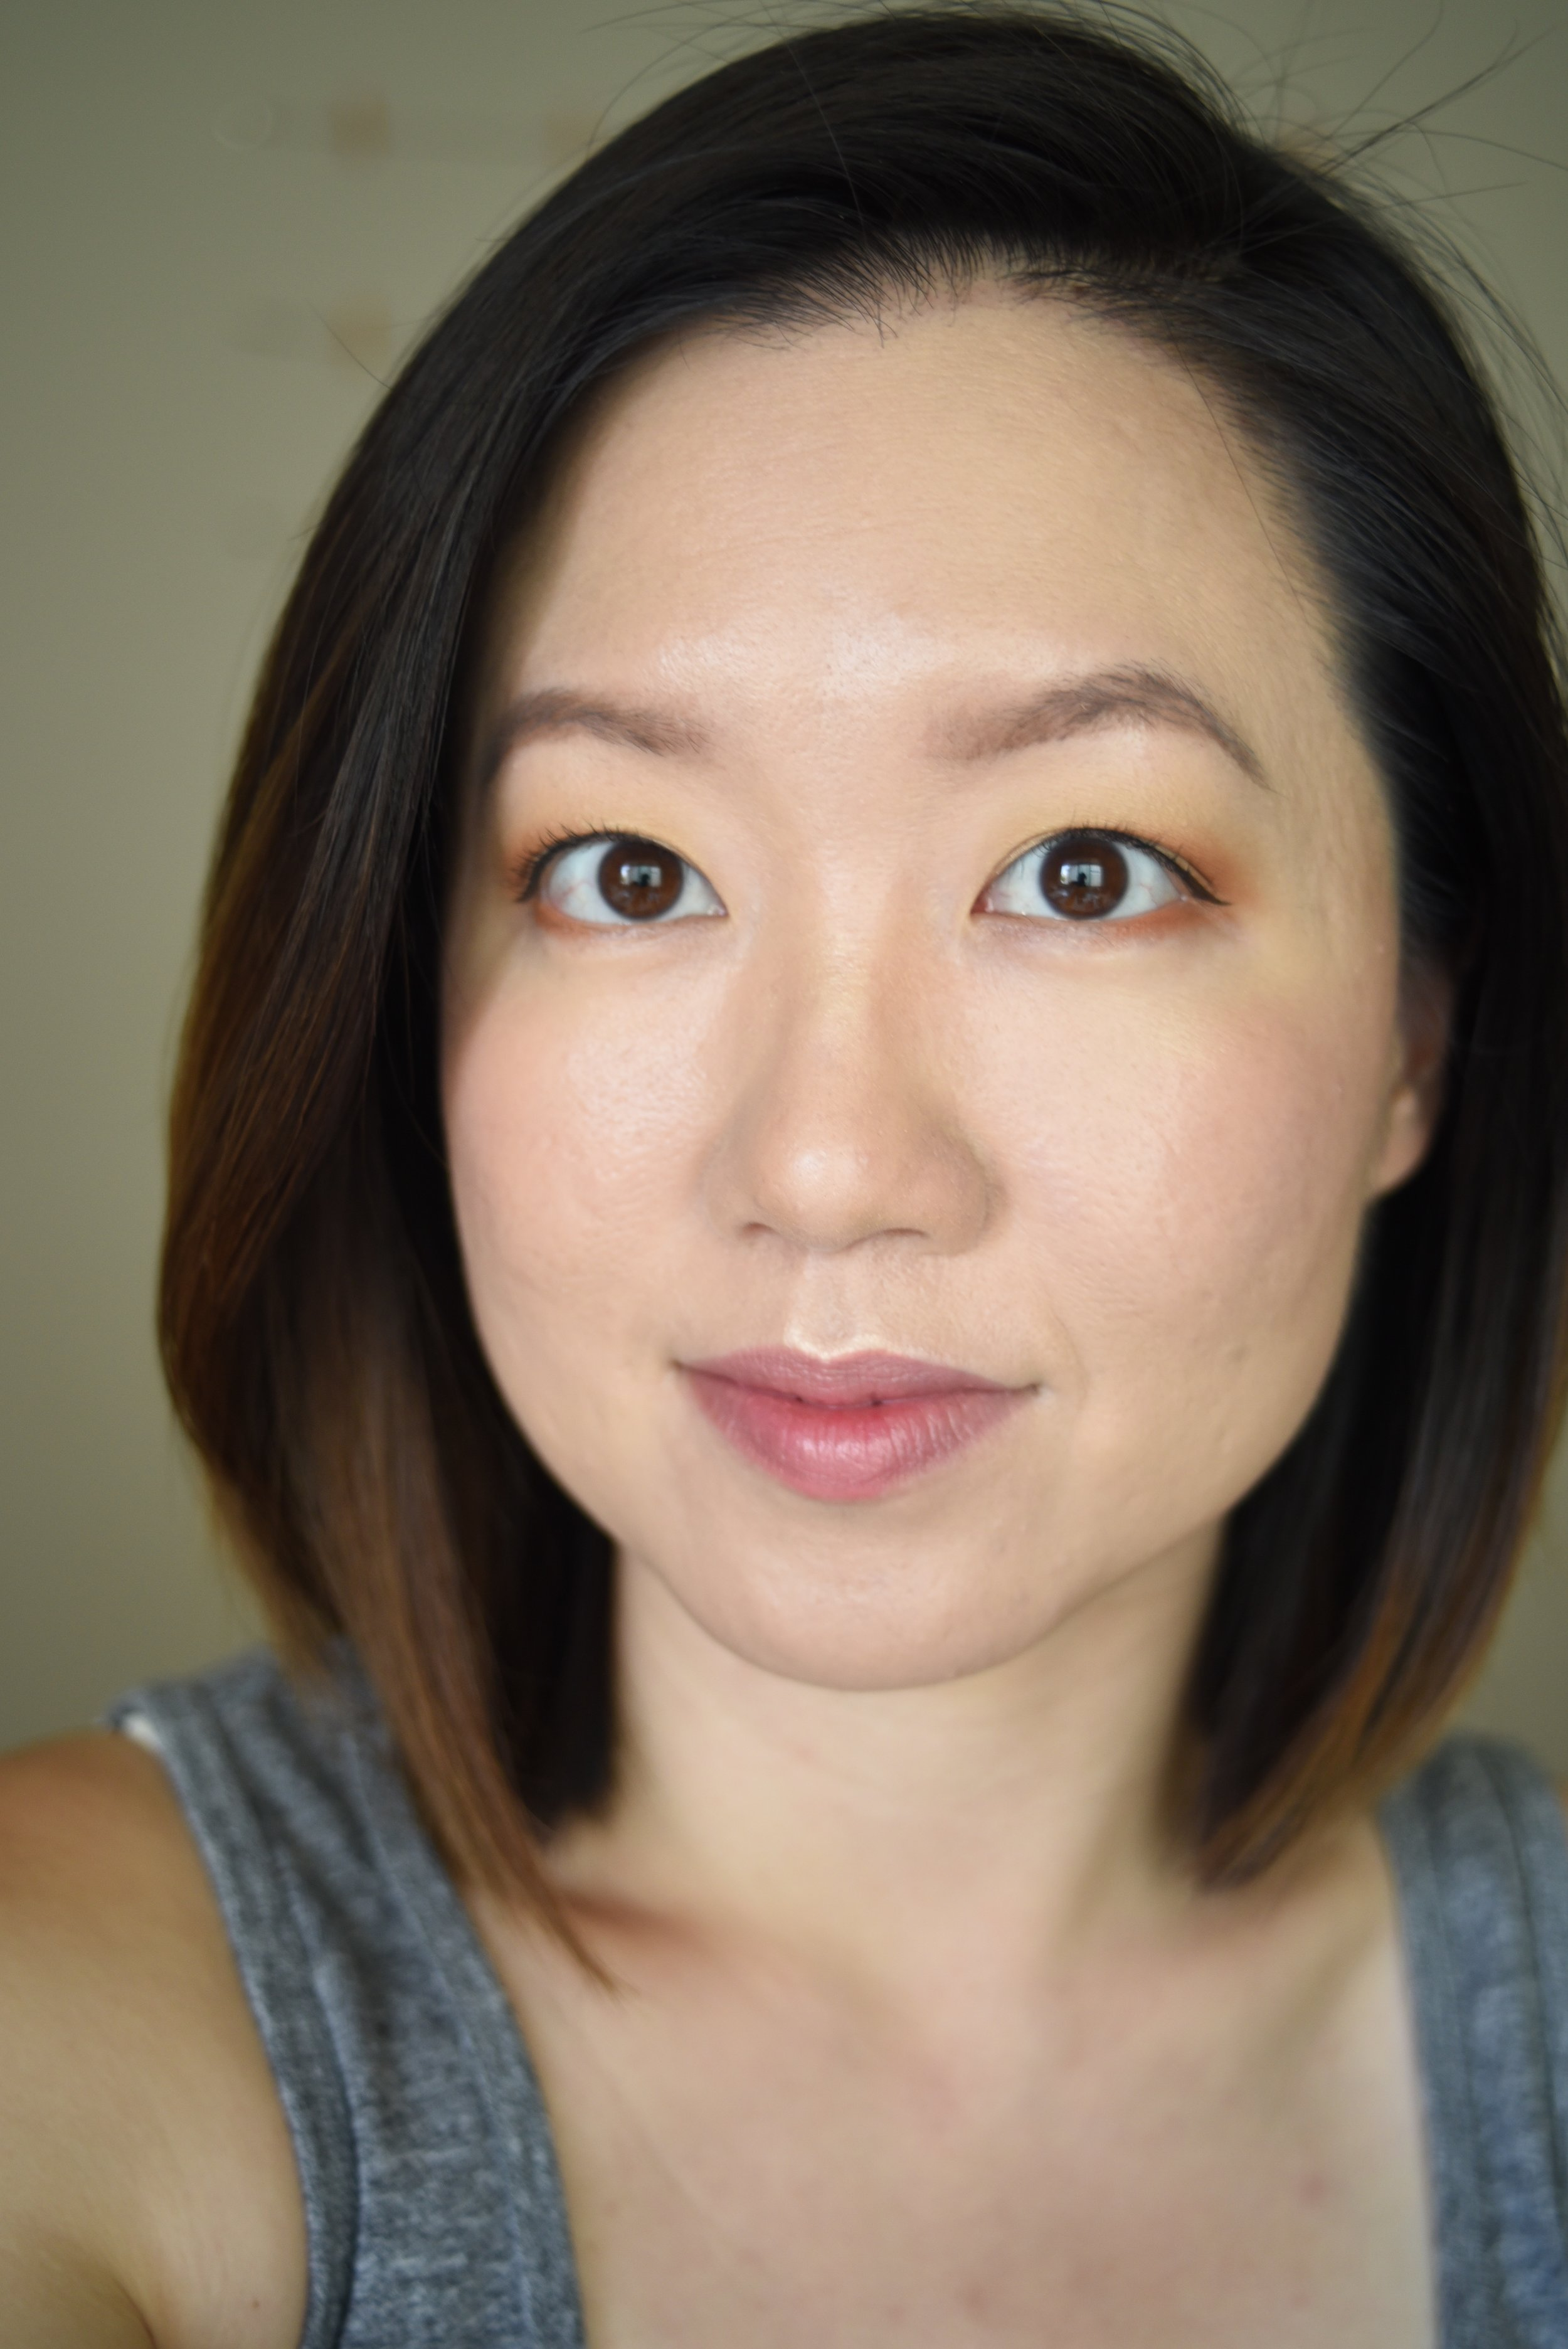 Unedited photo! Makeup freshly applied.